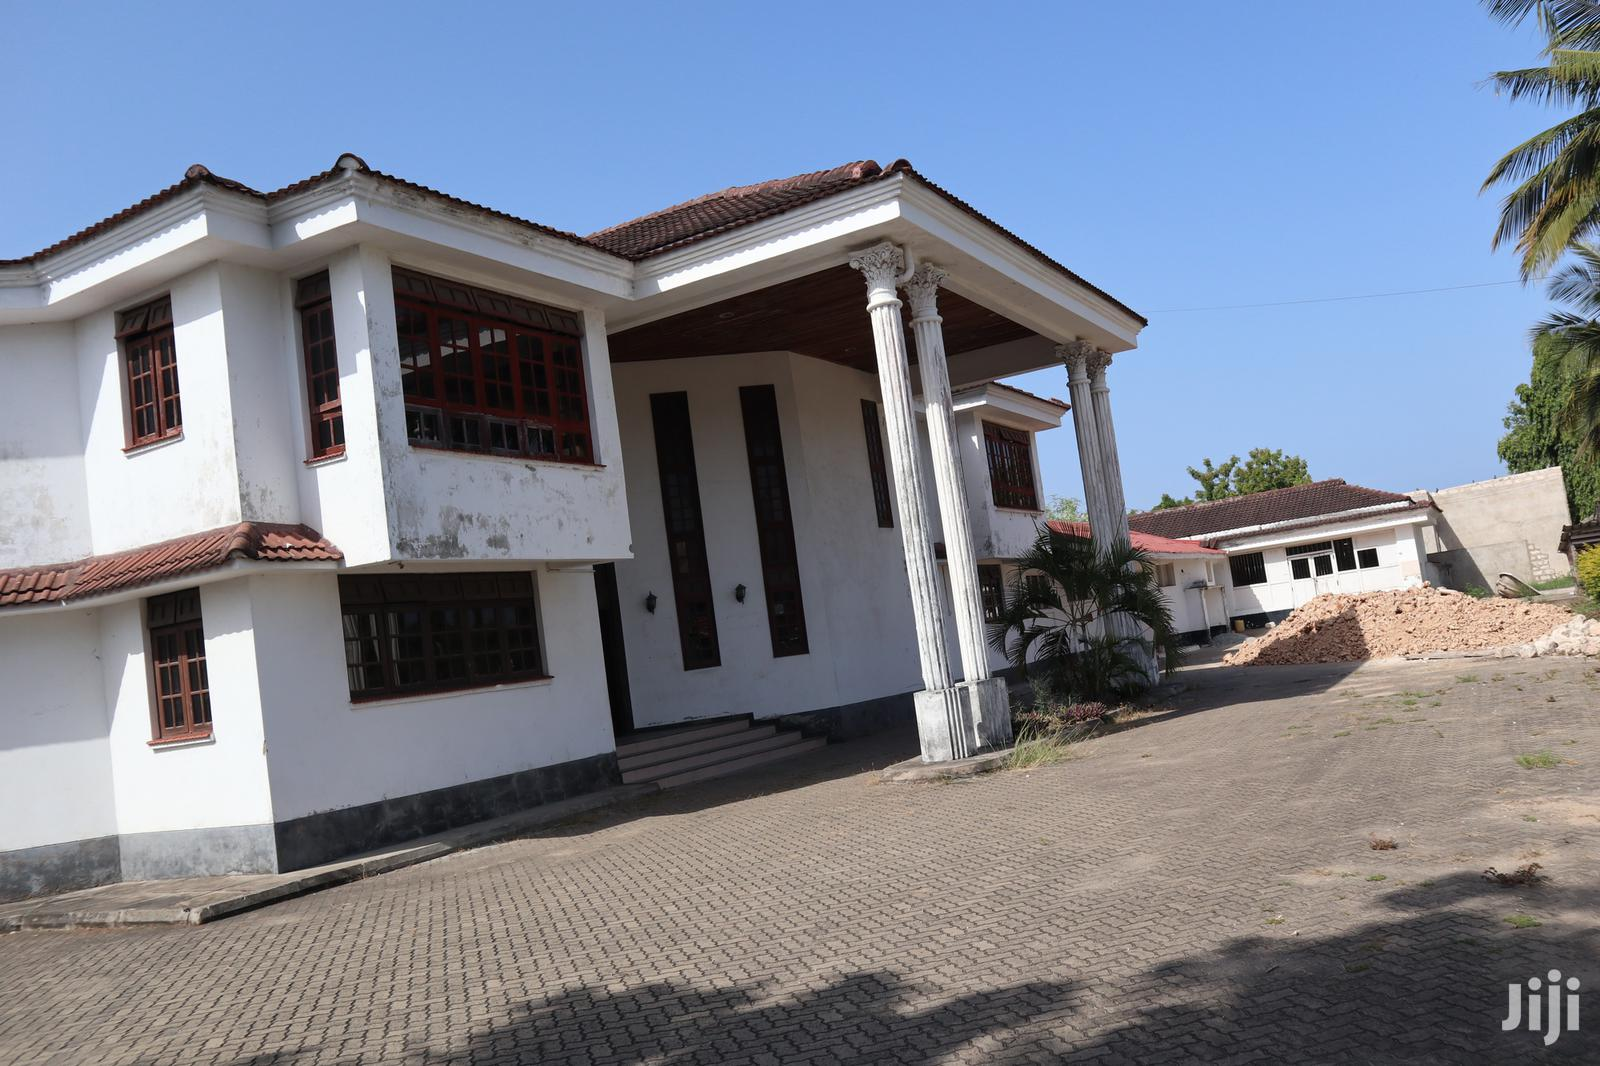 8 Br Mansion Own Compound Ideal For Show Room, Office-benford Homes